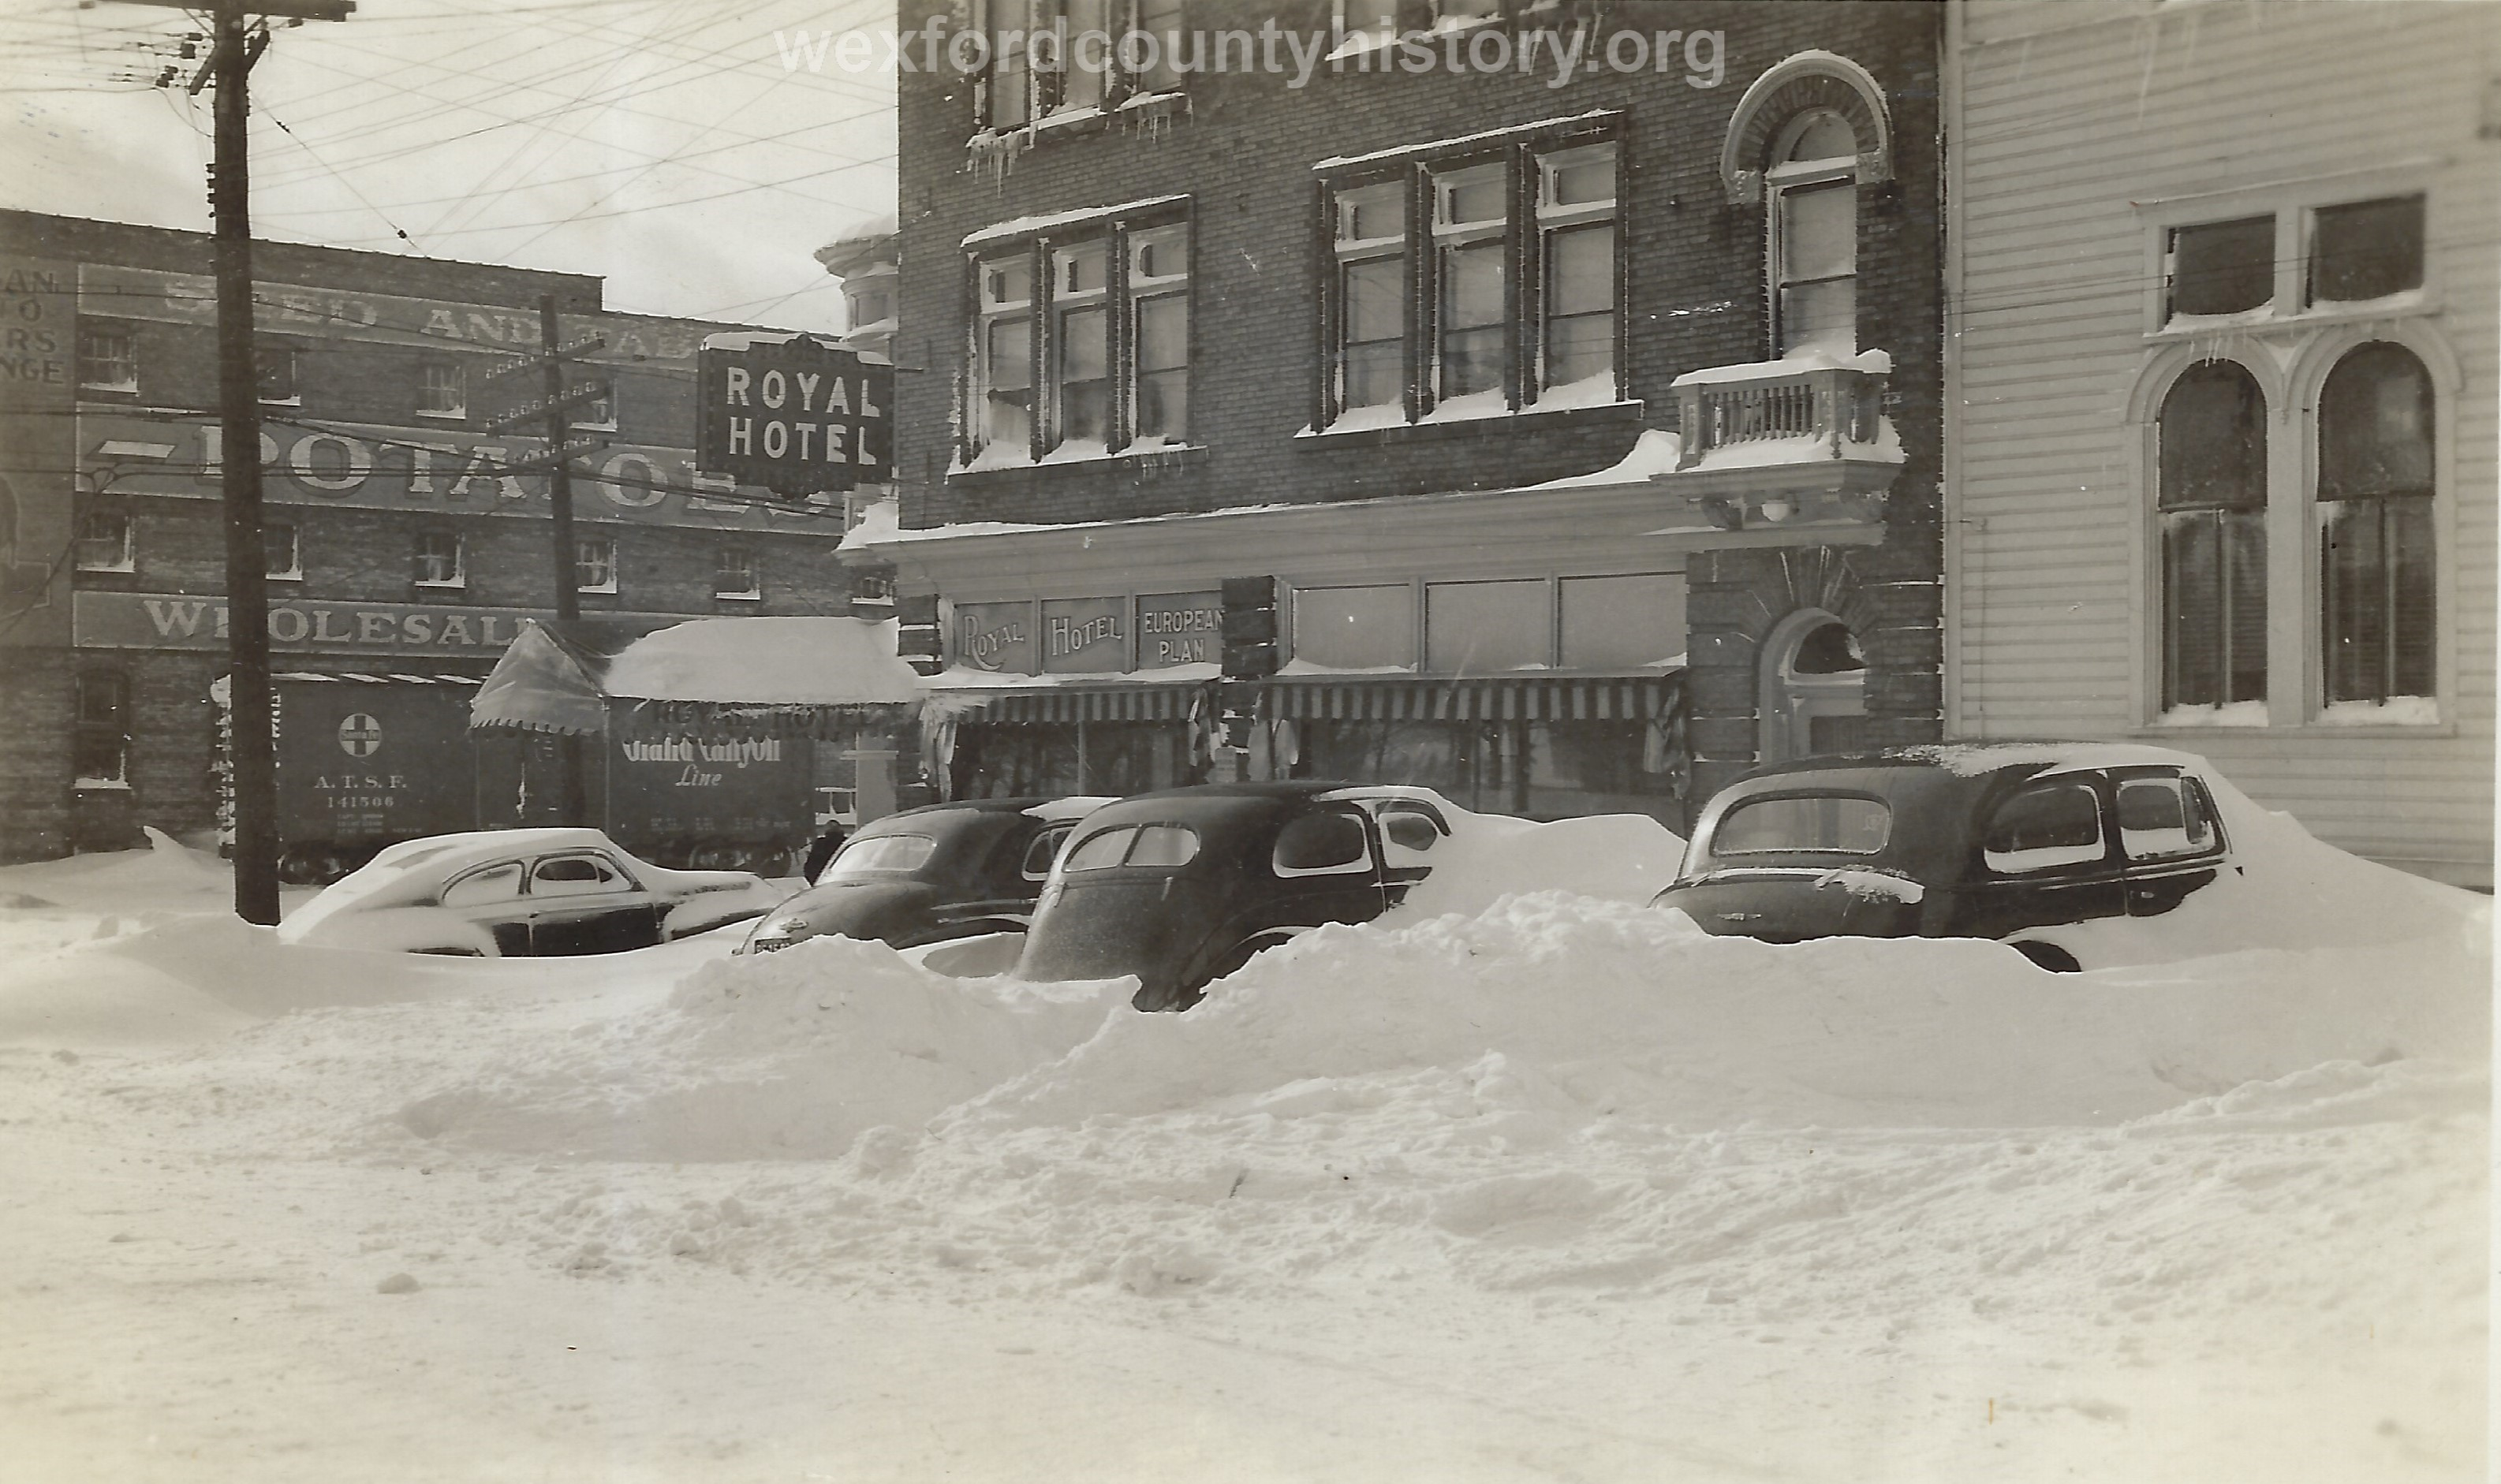 Cadillac-Weather-Cars-Buried-Under-Snow-At-Royal-Hotel